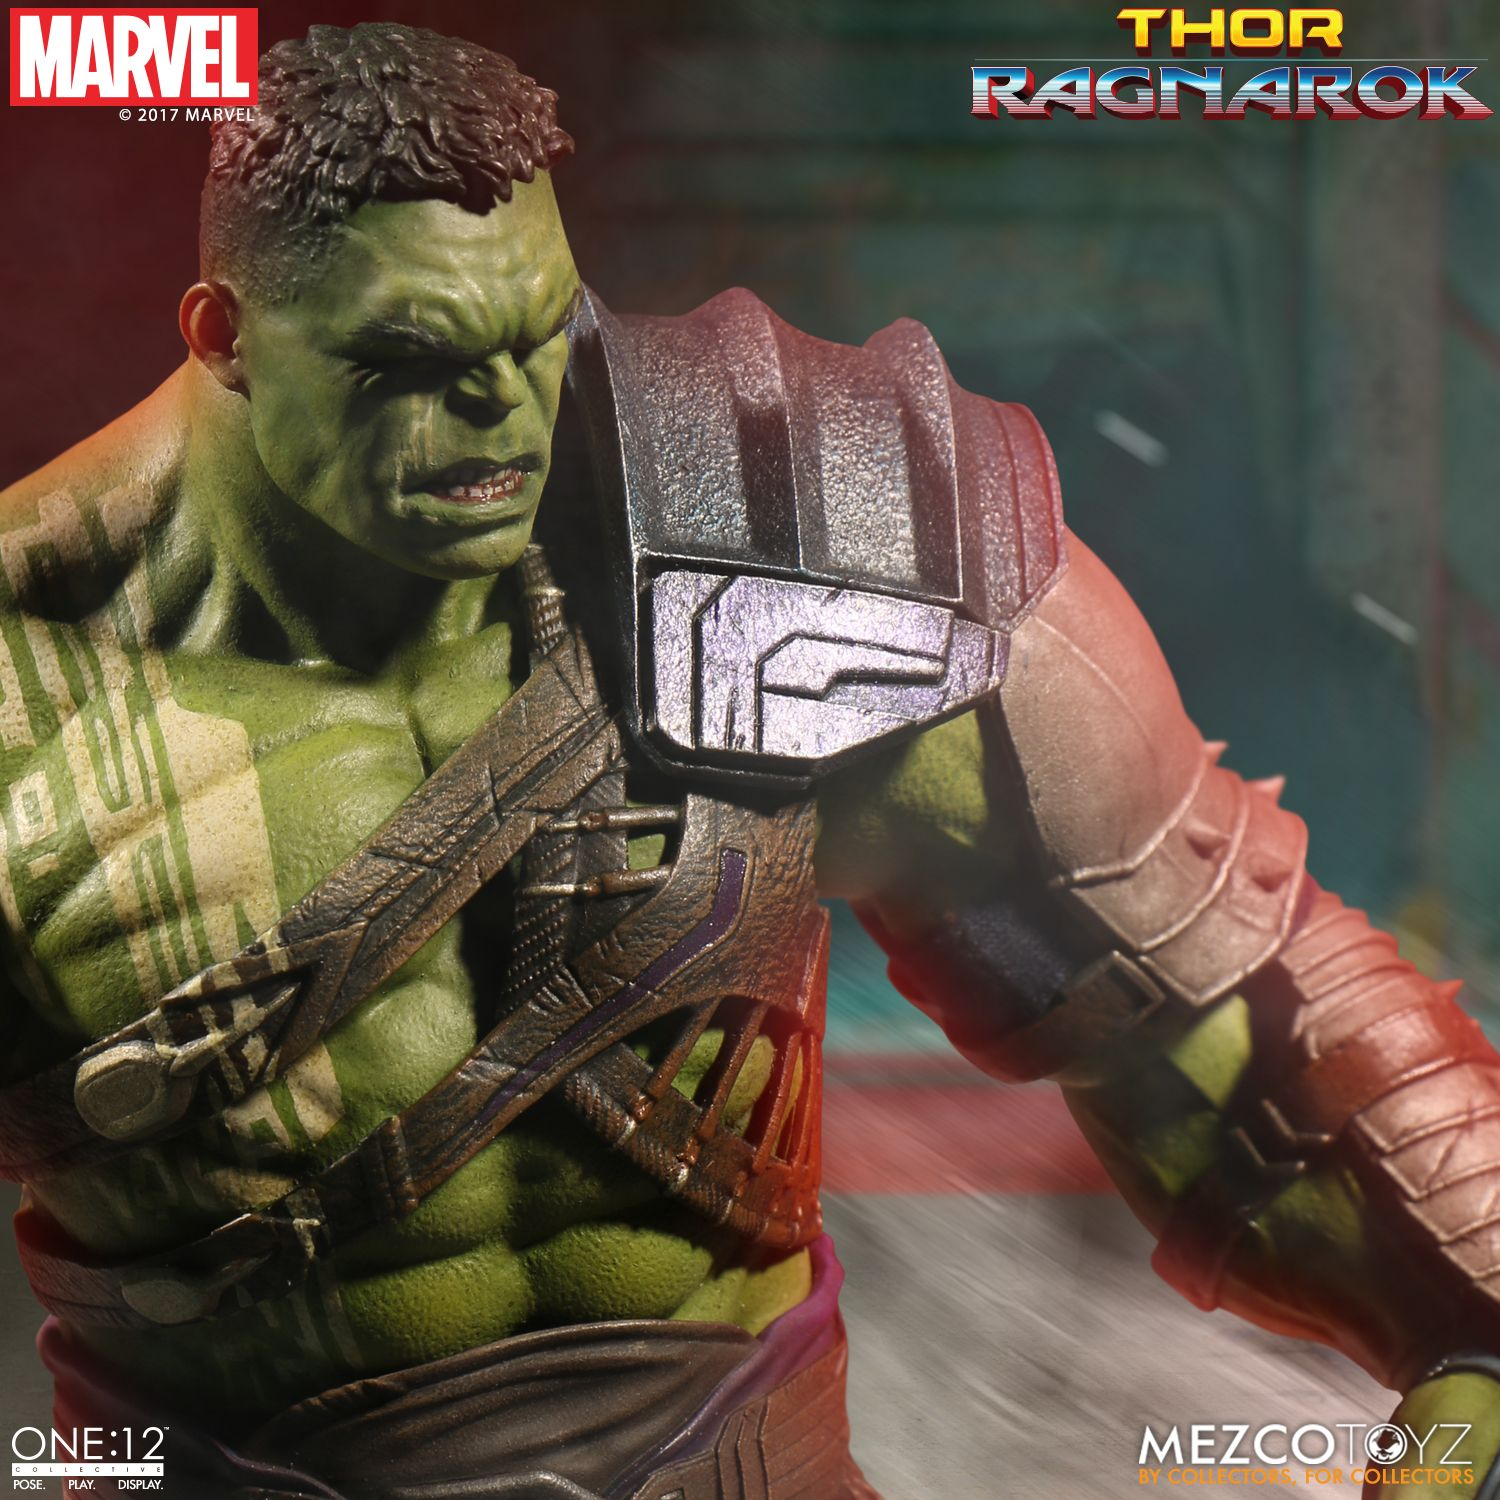 In Hand! Mezco Toyz 1//12 One 12 Collective Marvel Thor Ragnarok Gladiator Hulk